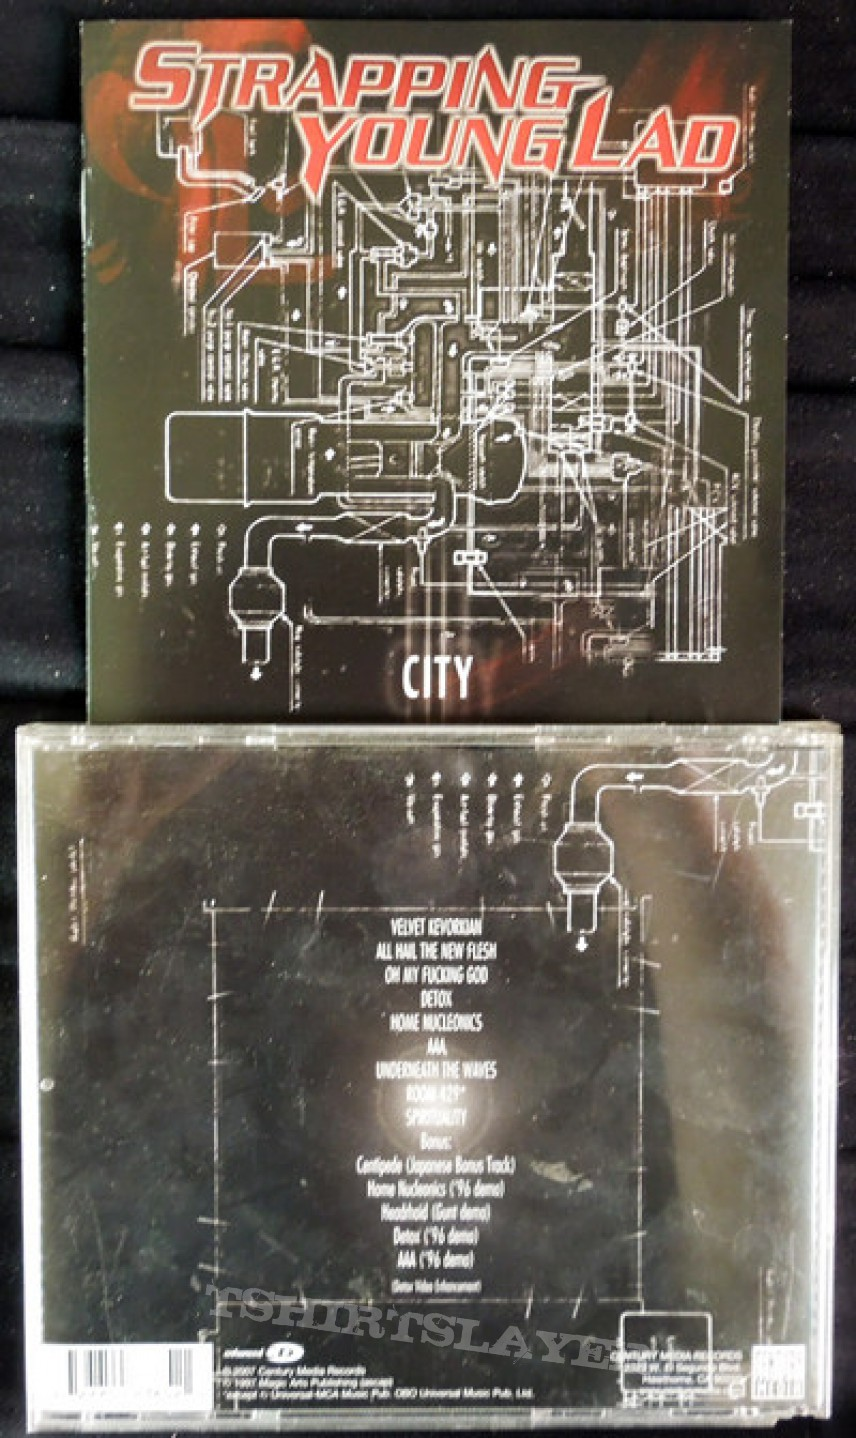 Strapping Young Lad - City CD (Signed)